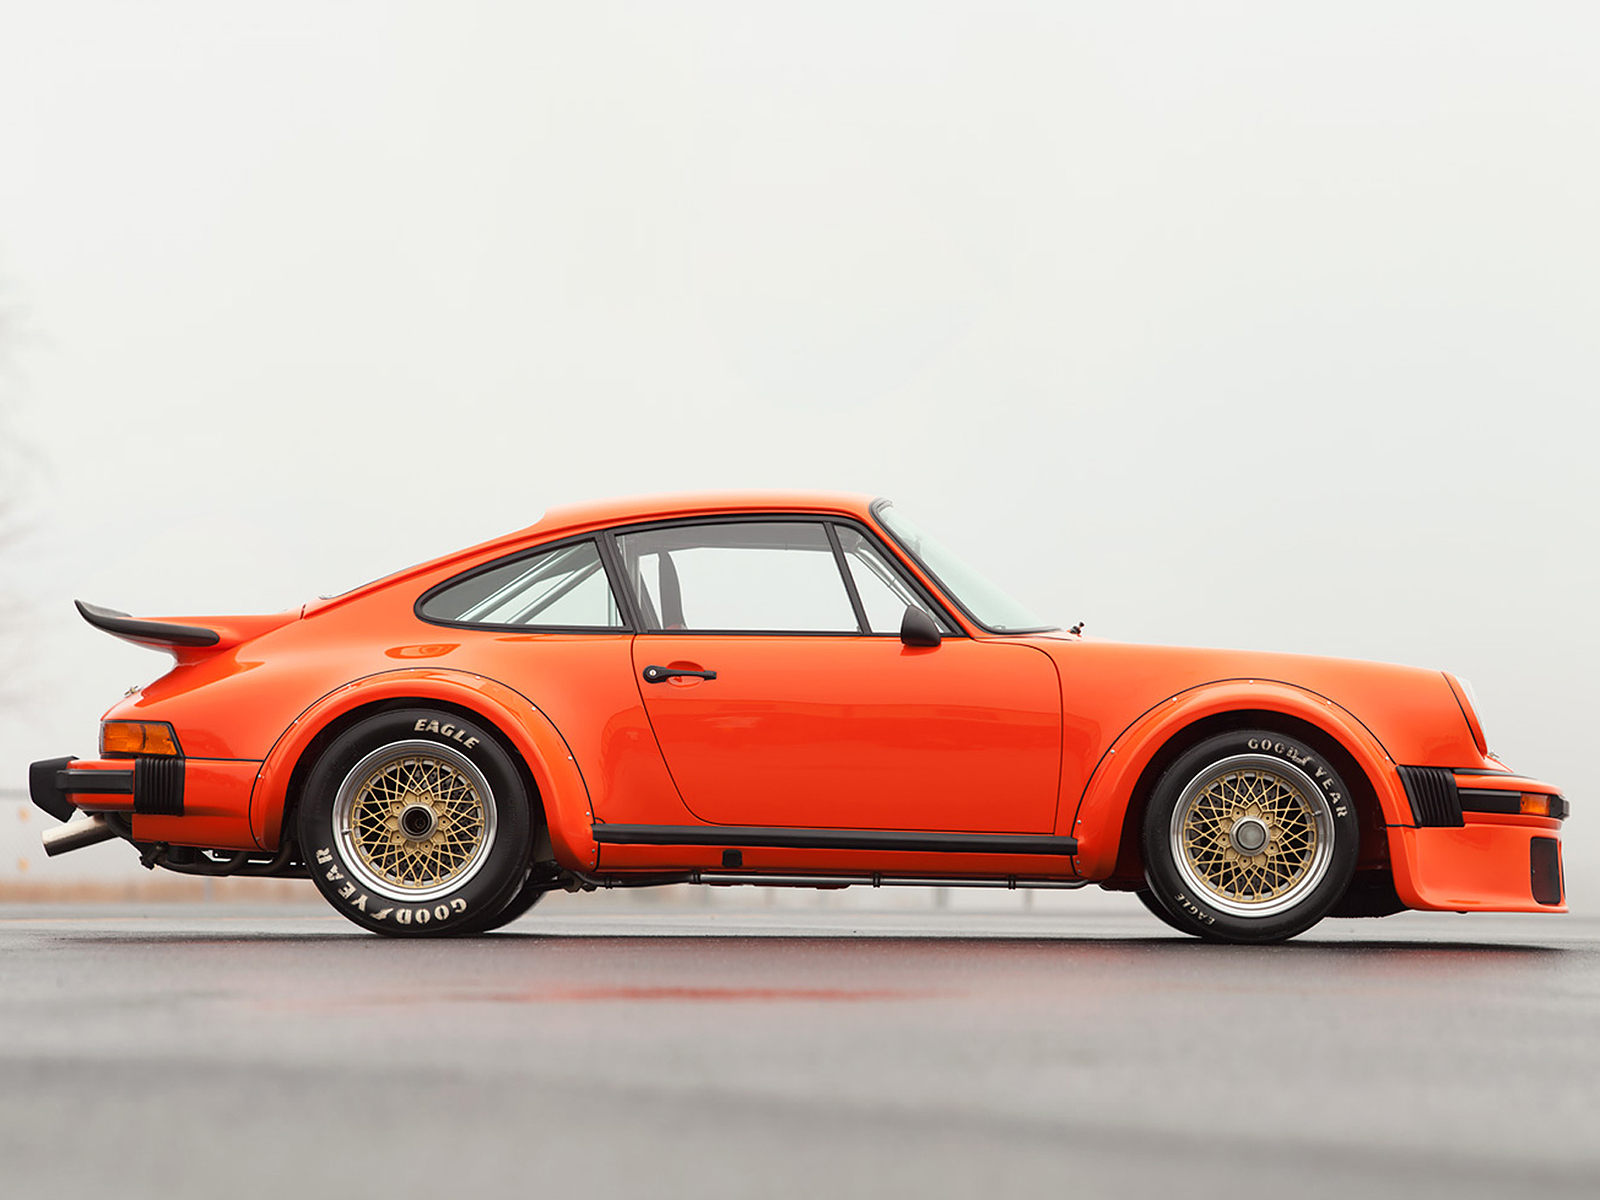 Porsche 911 Turbo Rsr 934 1976 Wallpaper And Background